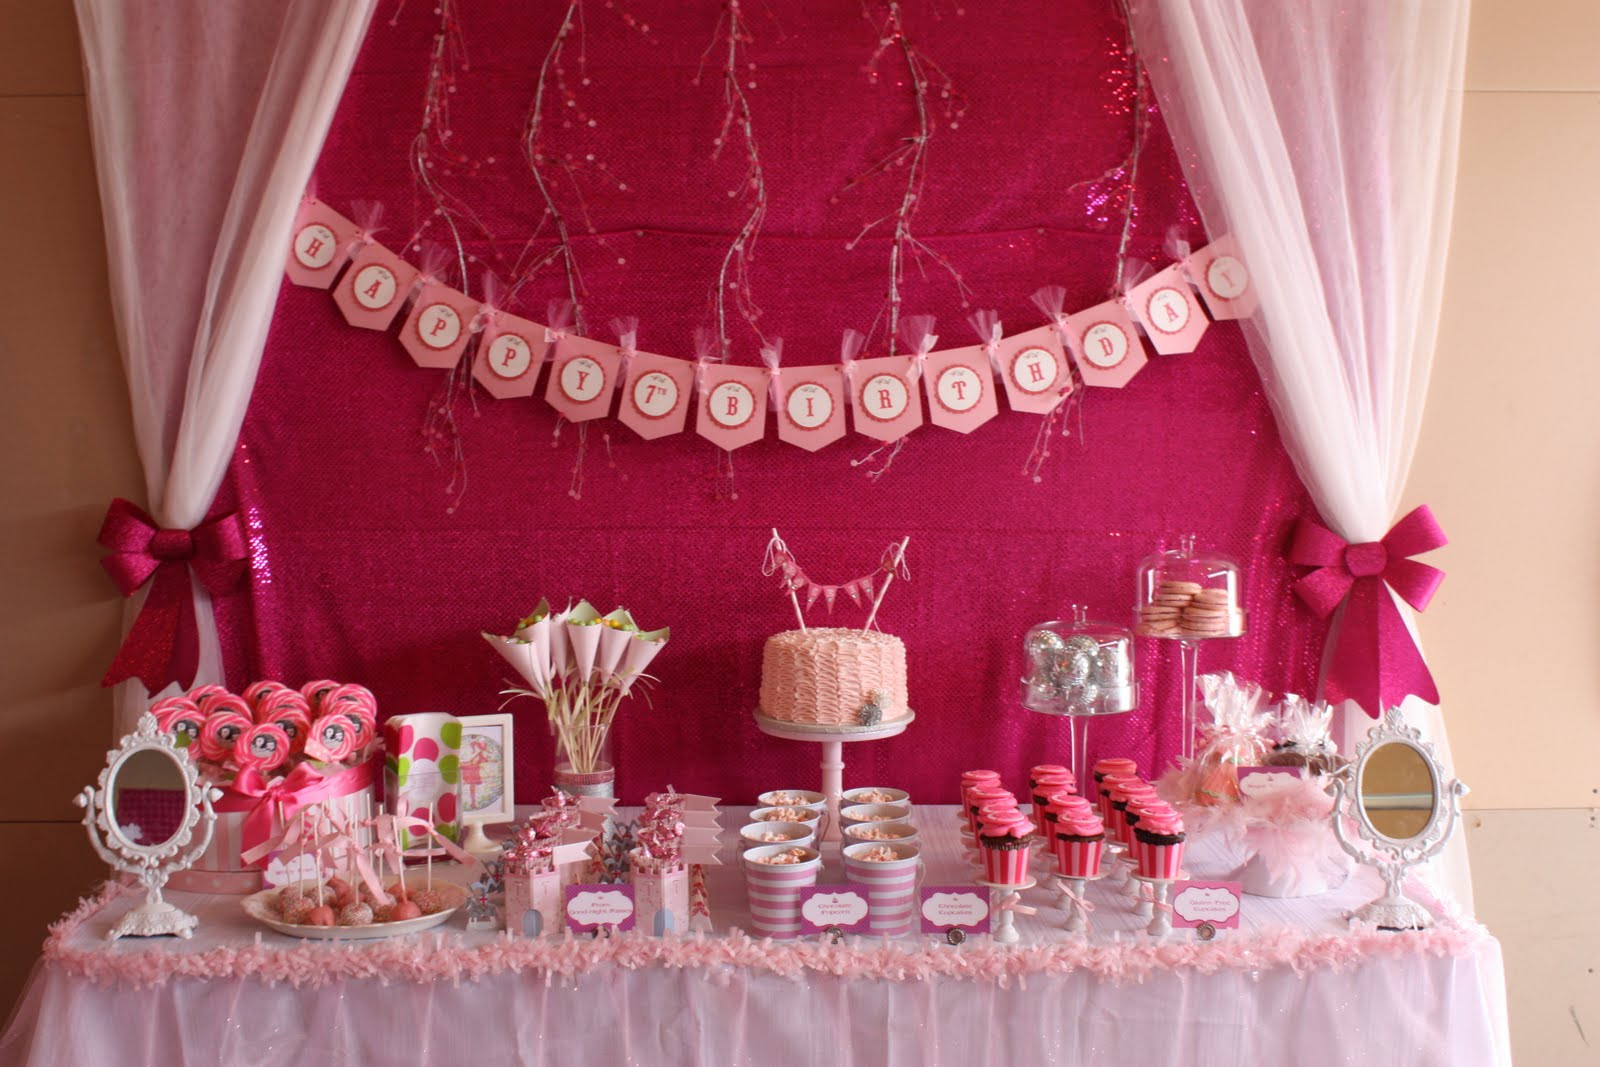 Best ideas about Pink Birthday Party Decorations . Save or Pin Girls Themes Now.